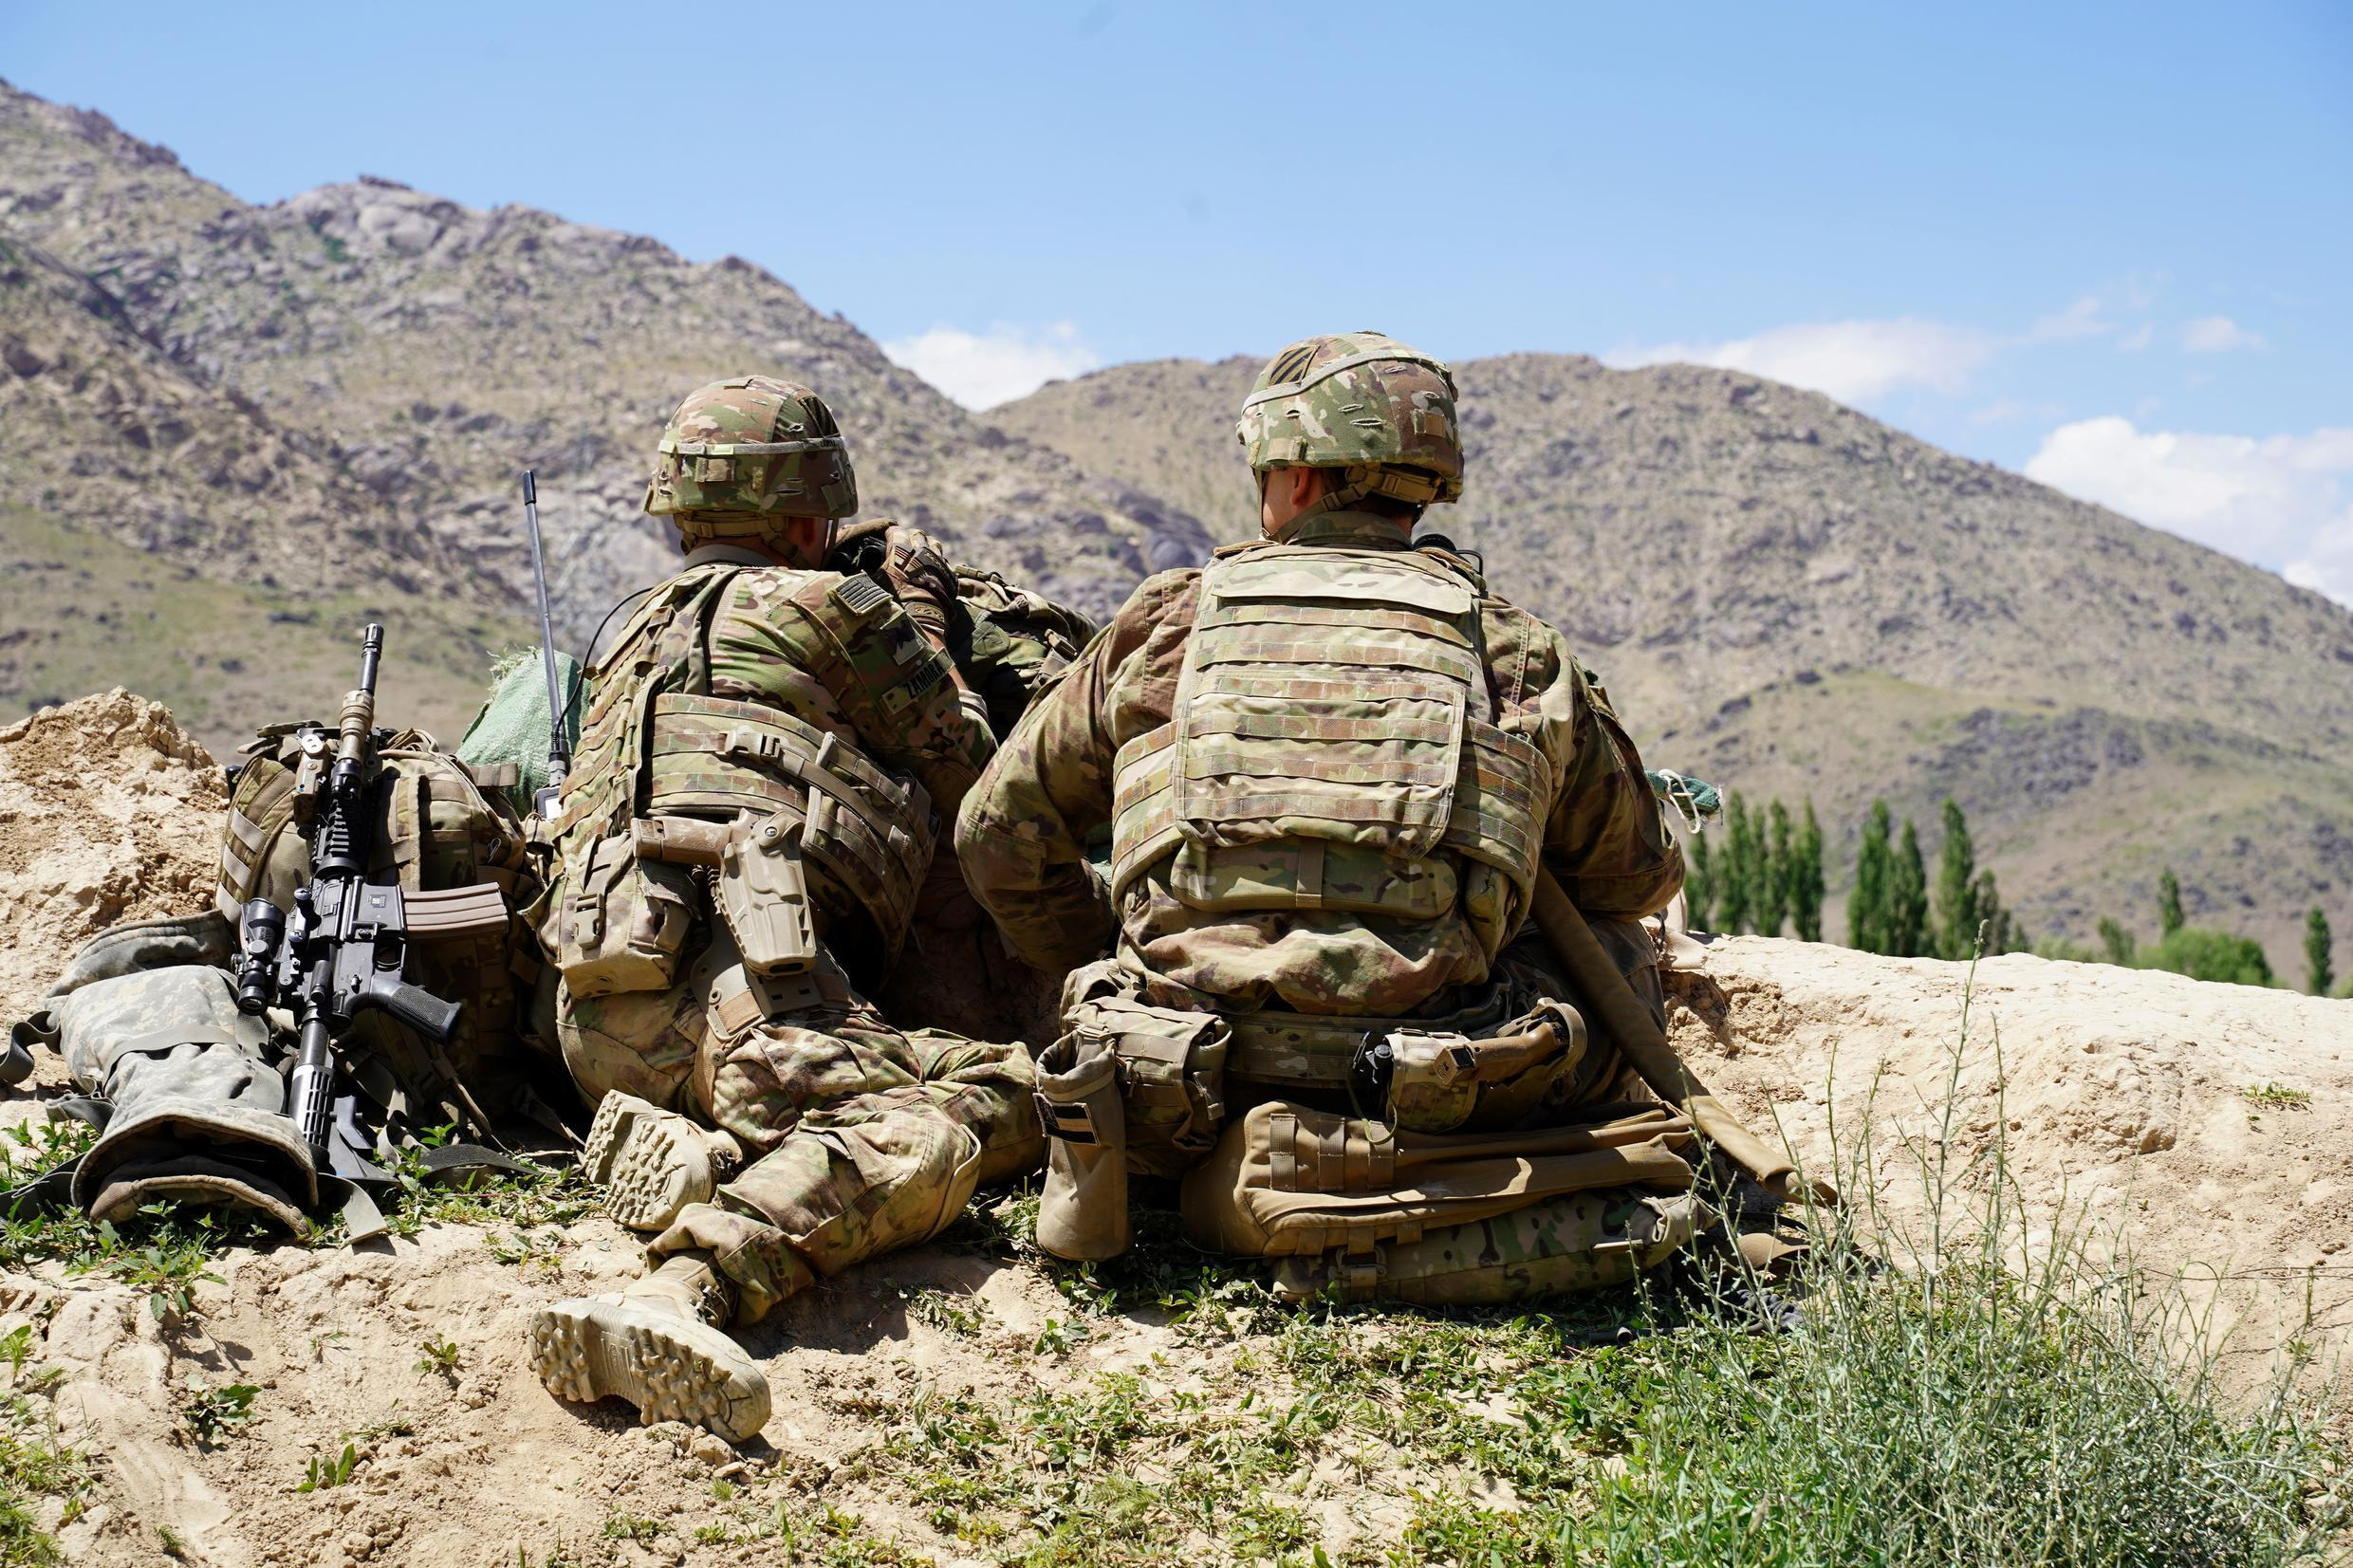 The US is initially supposed to cut its troop presence in Afghanistan from about 12,000 currently to 8,600 by mid-July, and close five of its roughly 20 bases across the country